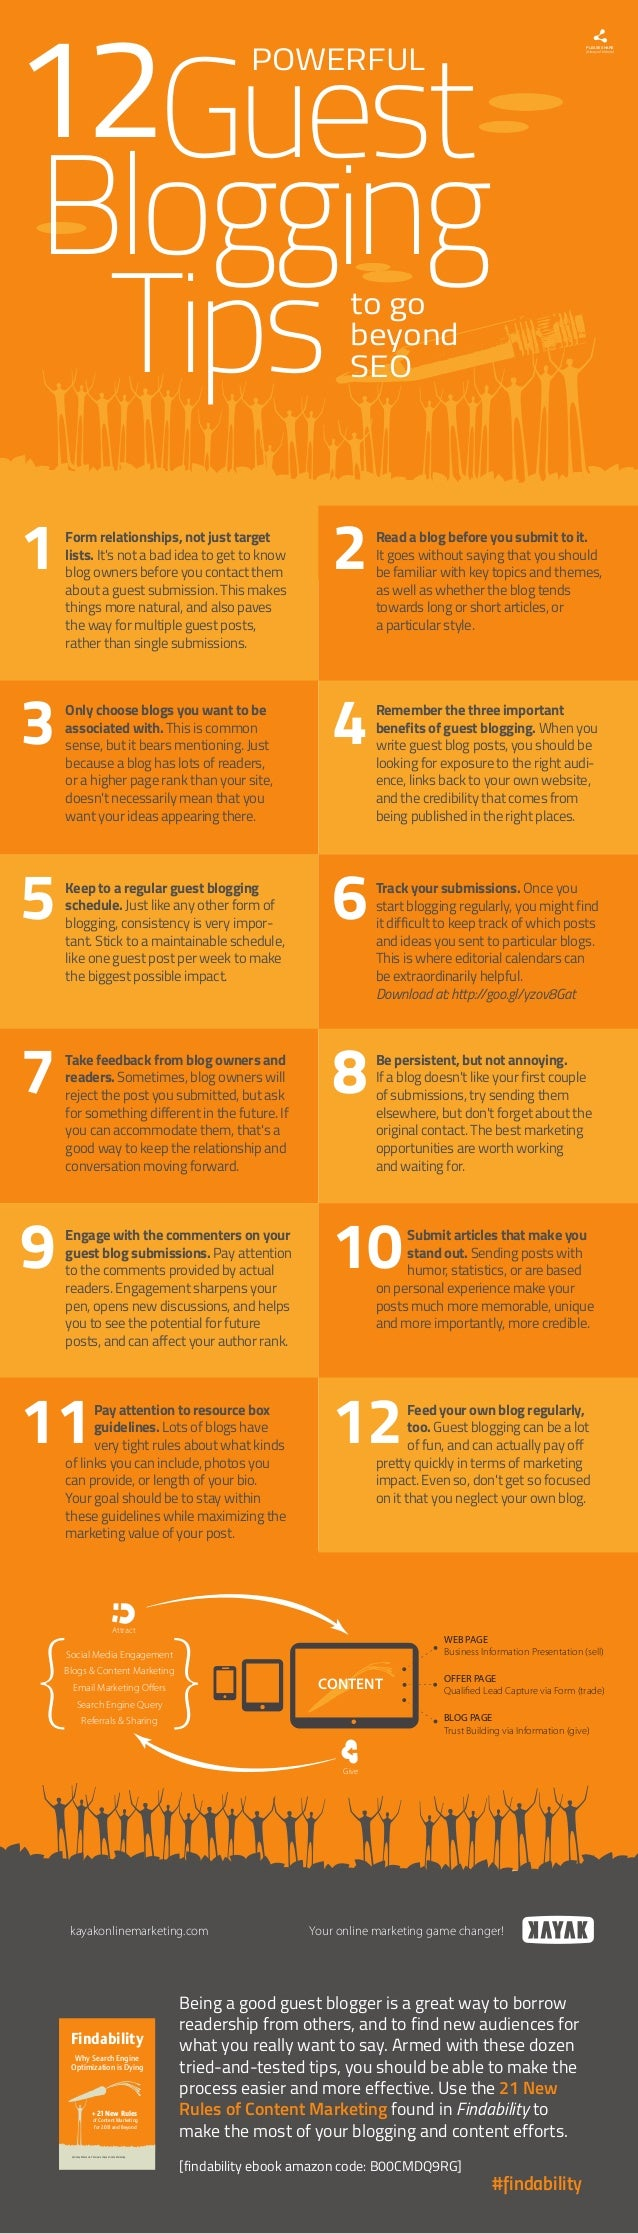 12Guest Blogging Tips POWERFUL  PLEASE SHARE (Always Attribute)  to go beyond SEO  3 5 7 9  Only choose blogs you want to ...